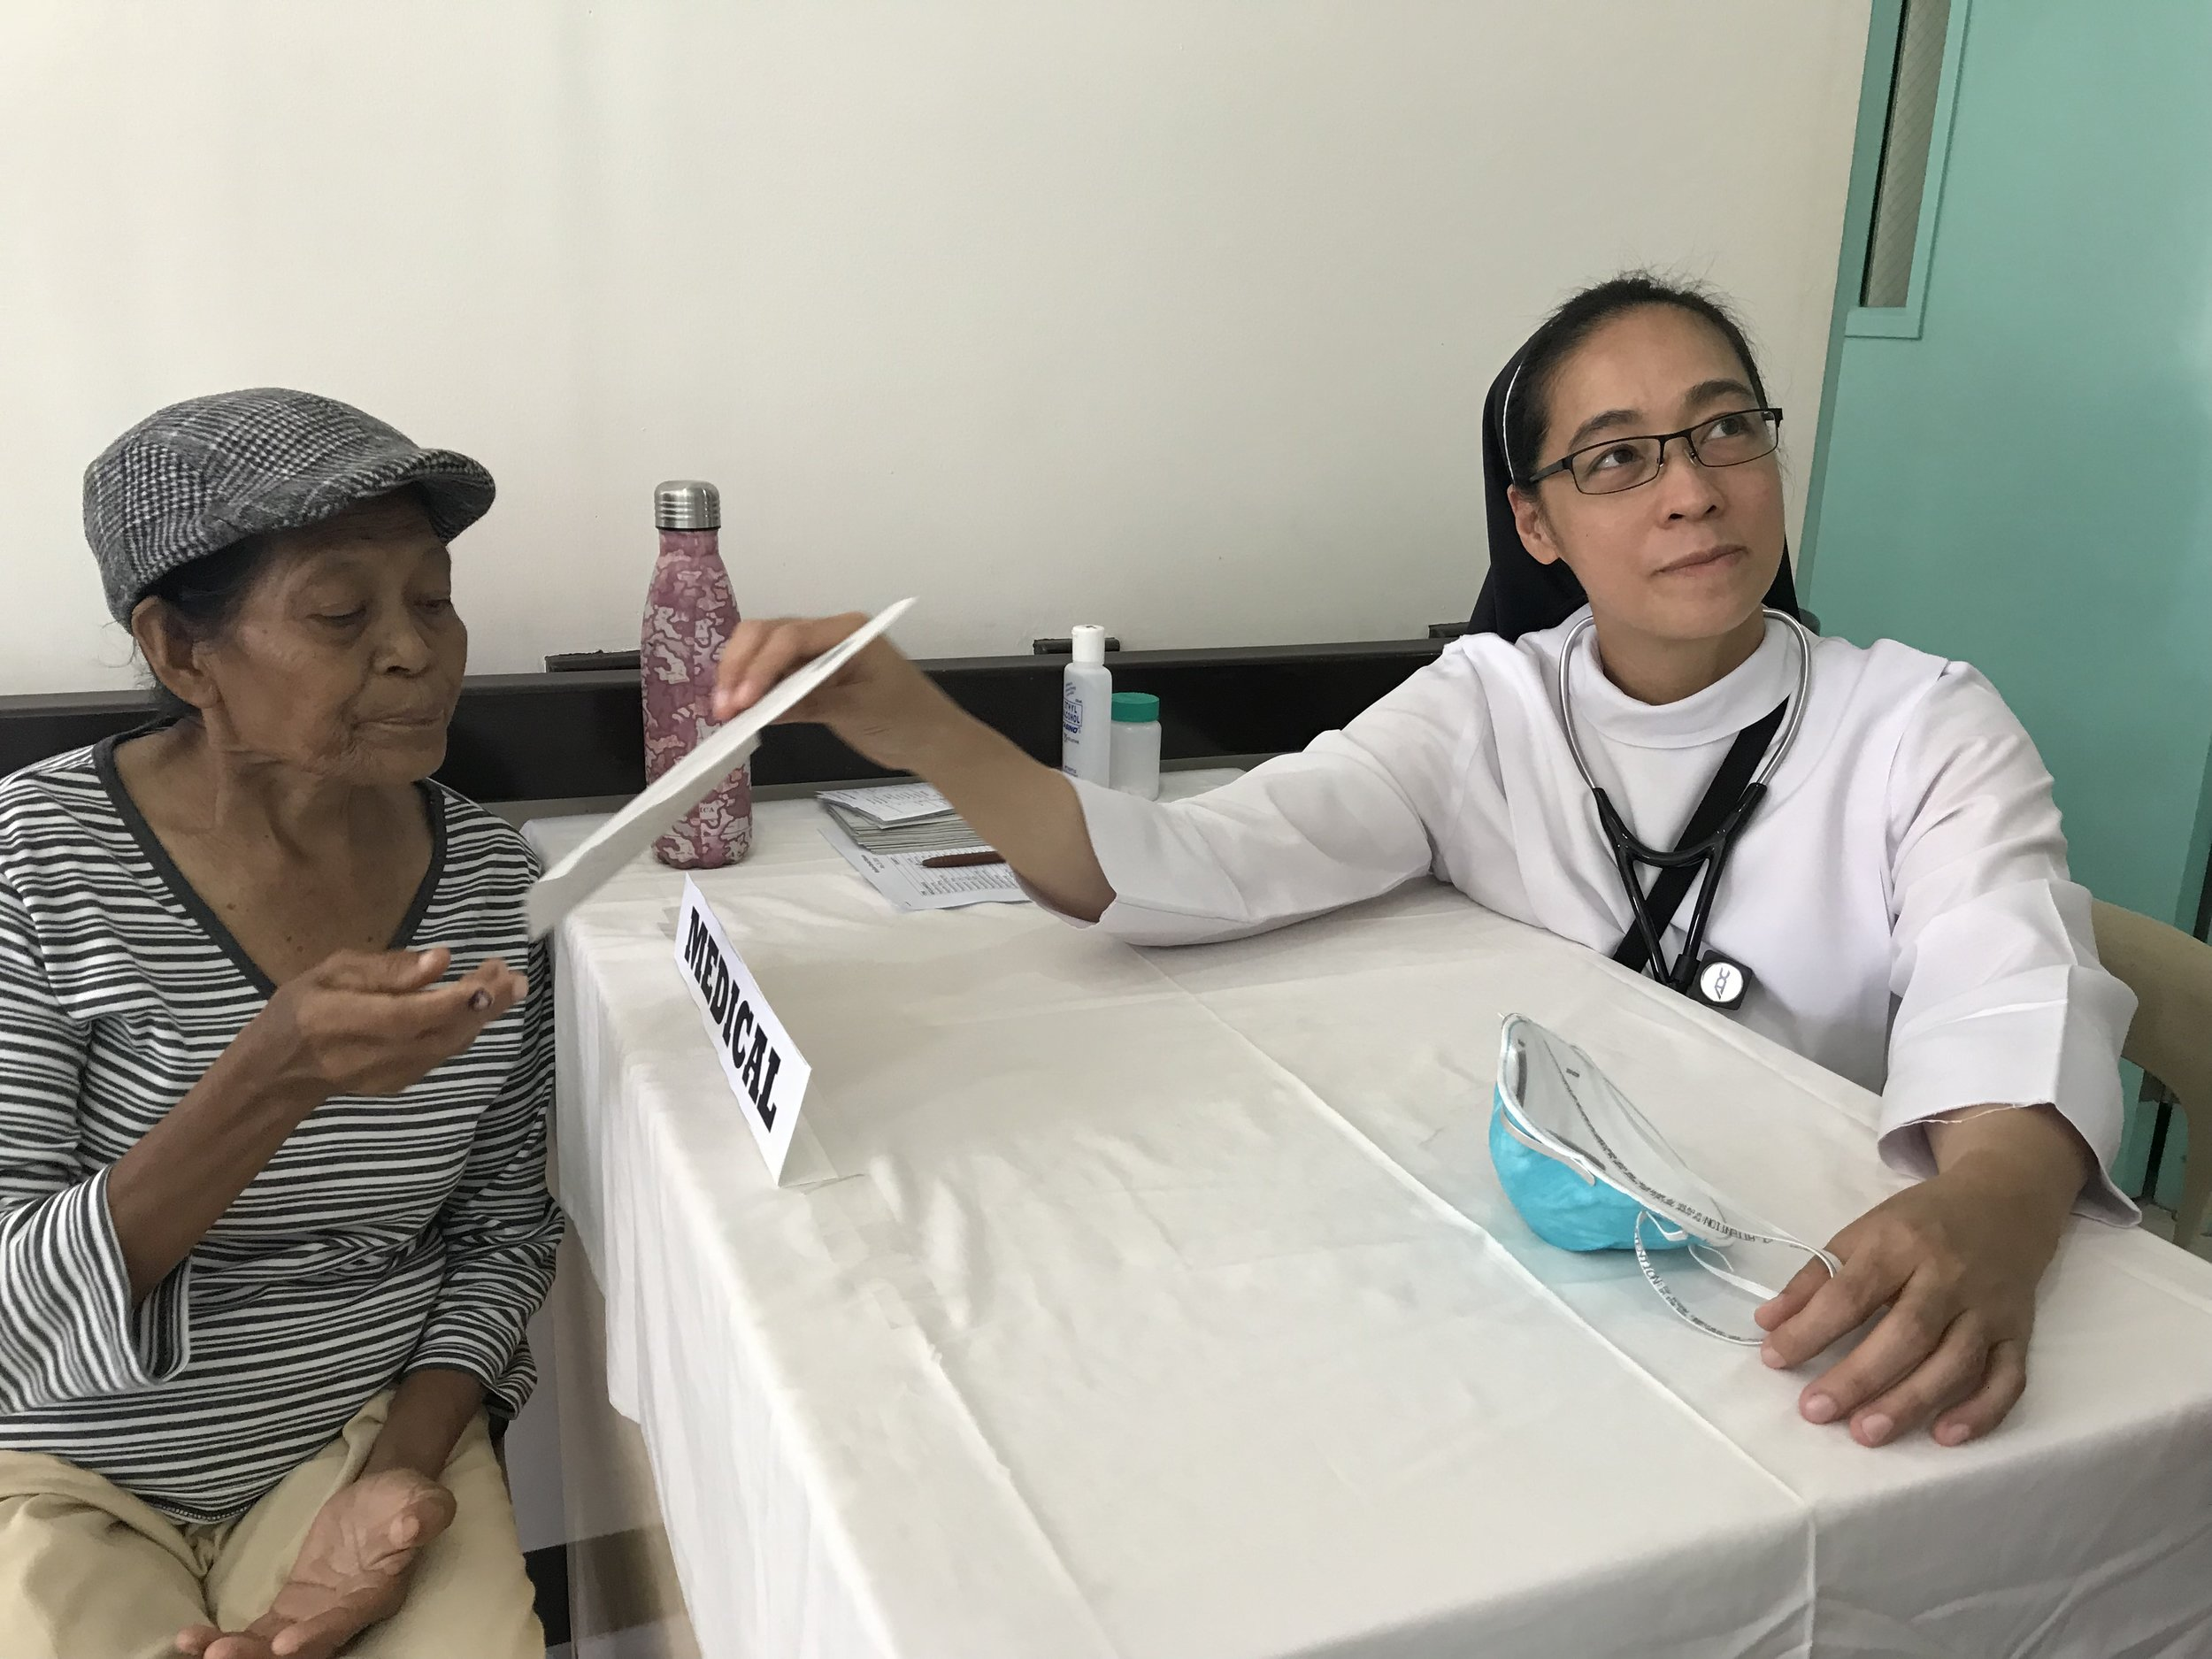 Sister Gertrude Bataan, MD with patient.